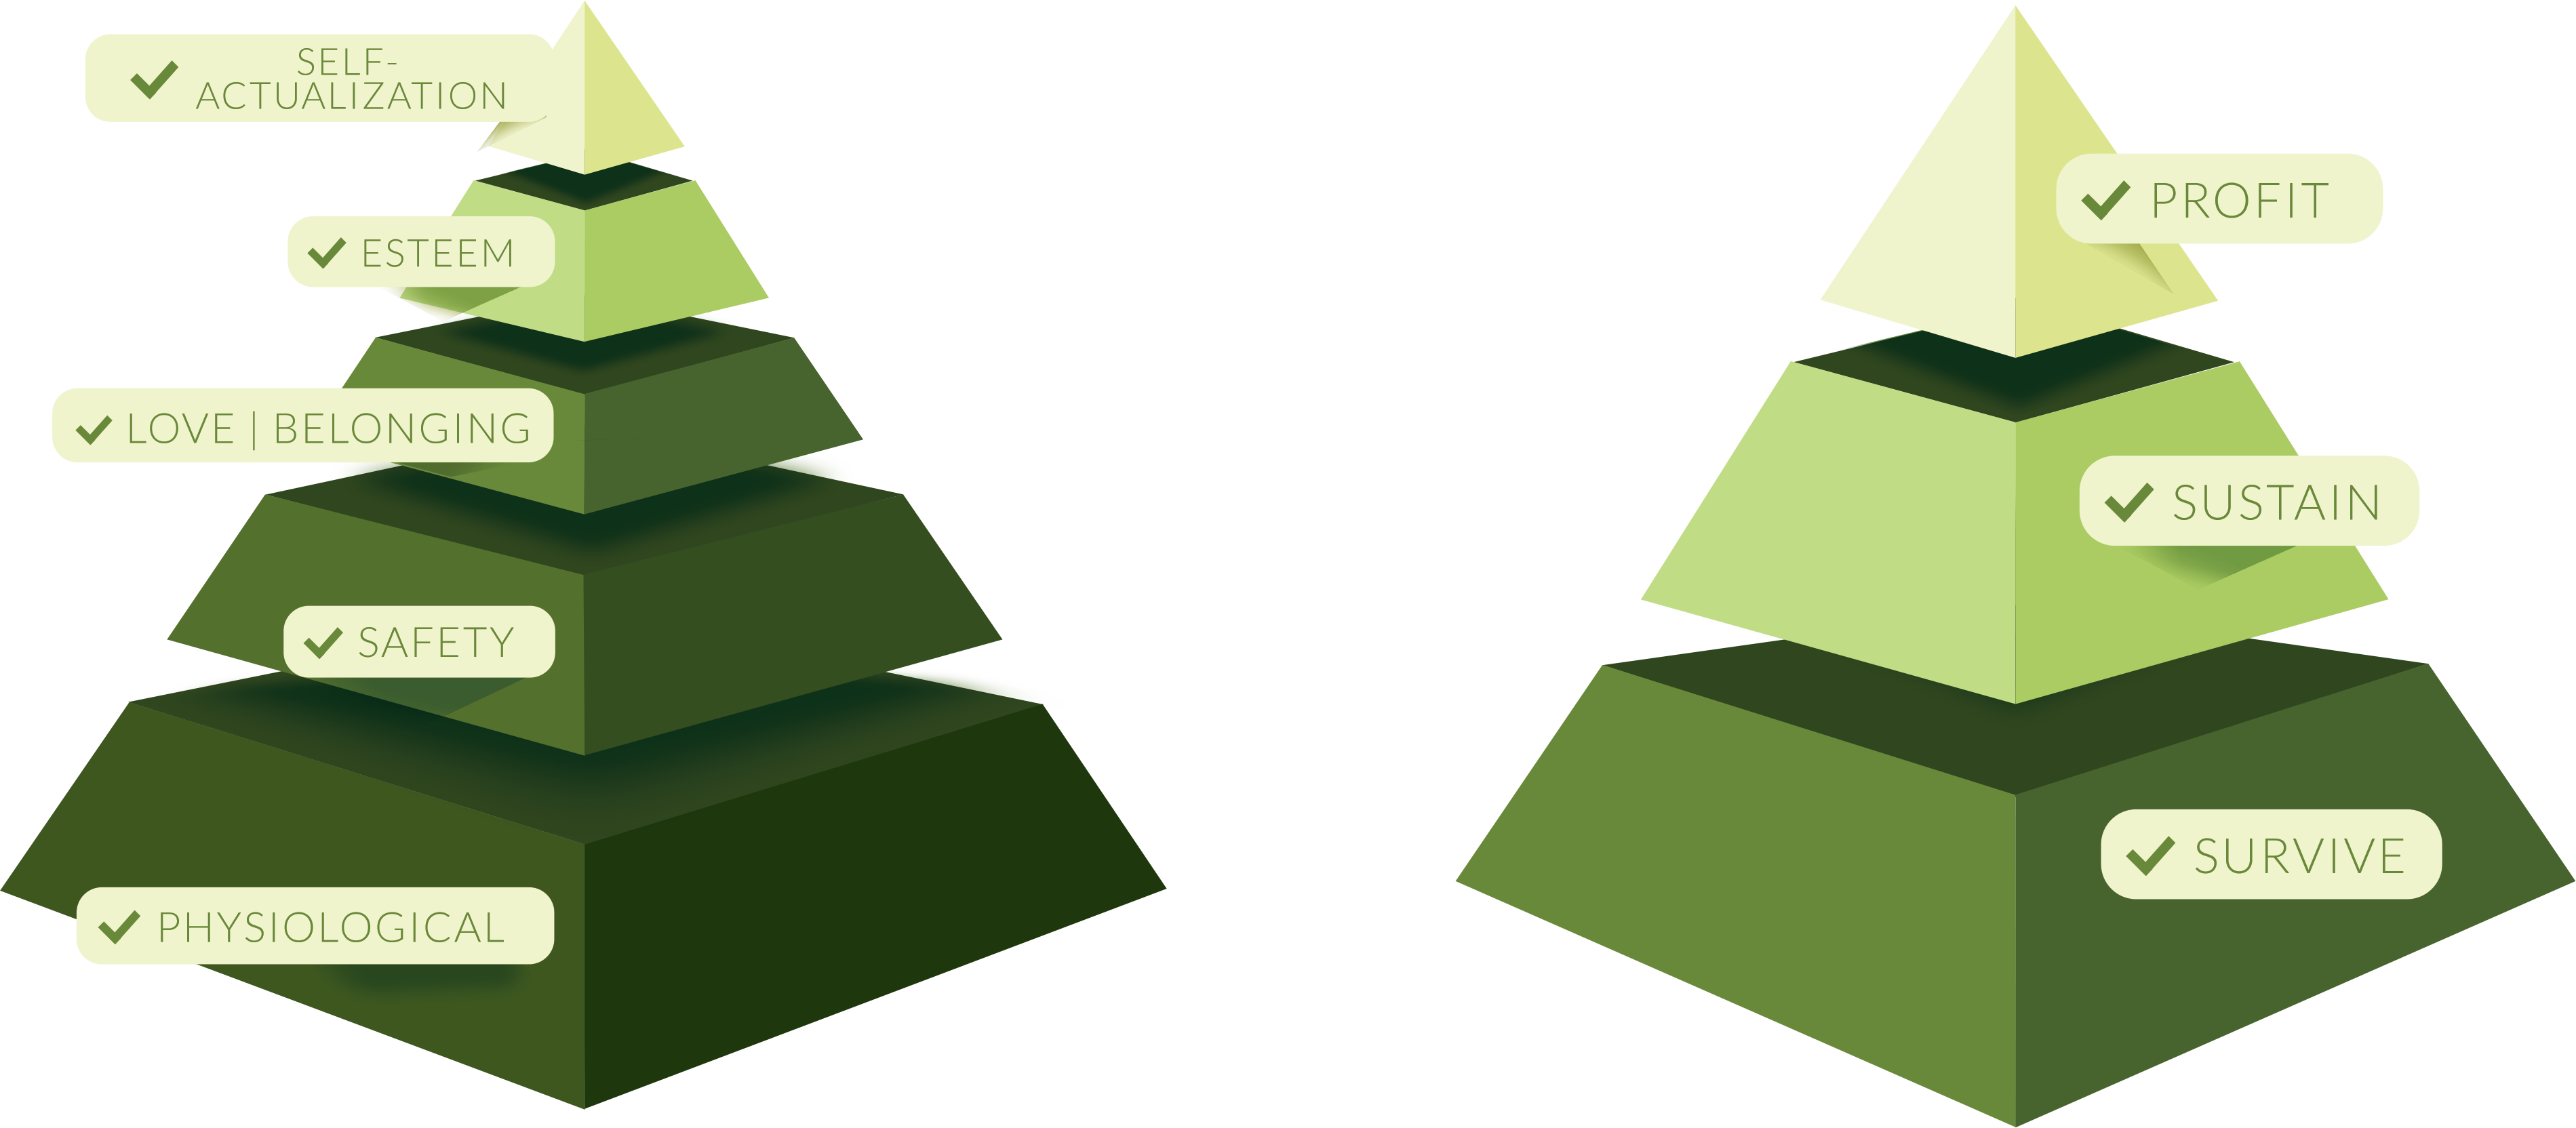 Maslows and business goals pyramids.png